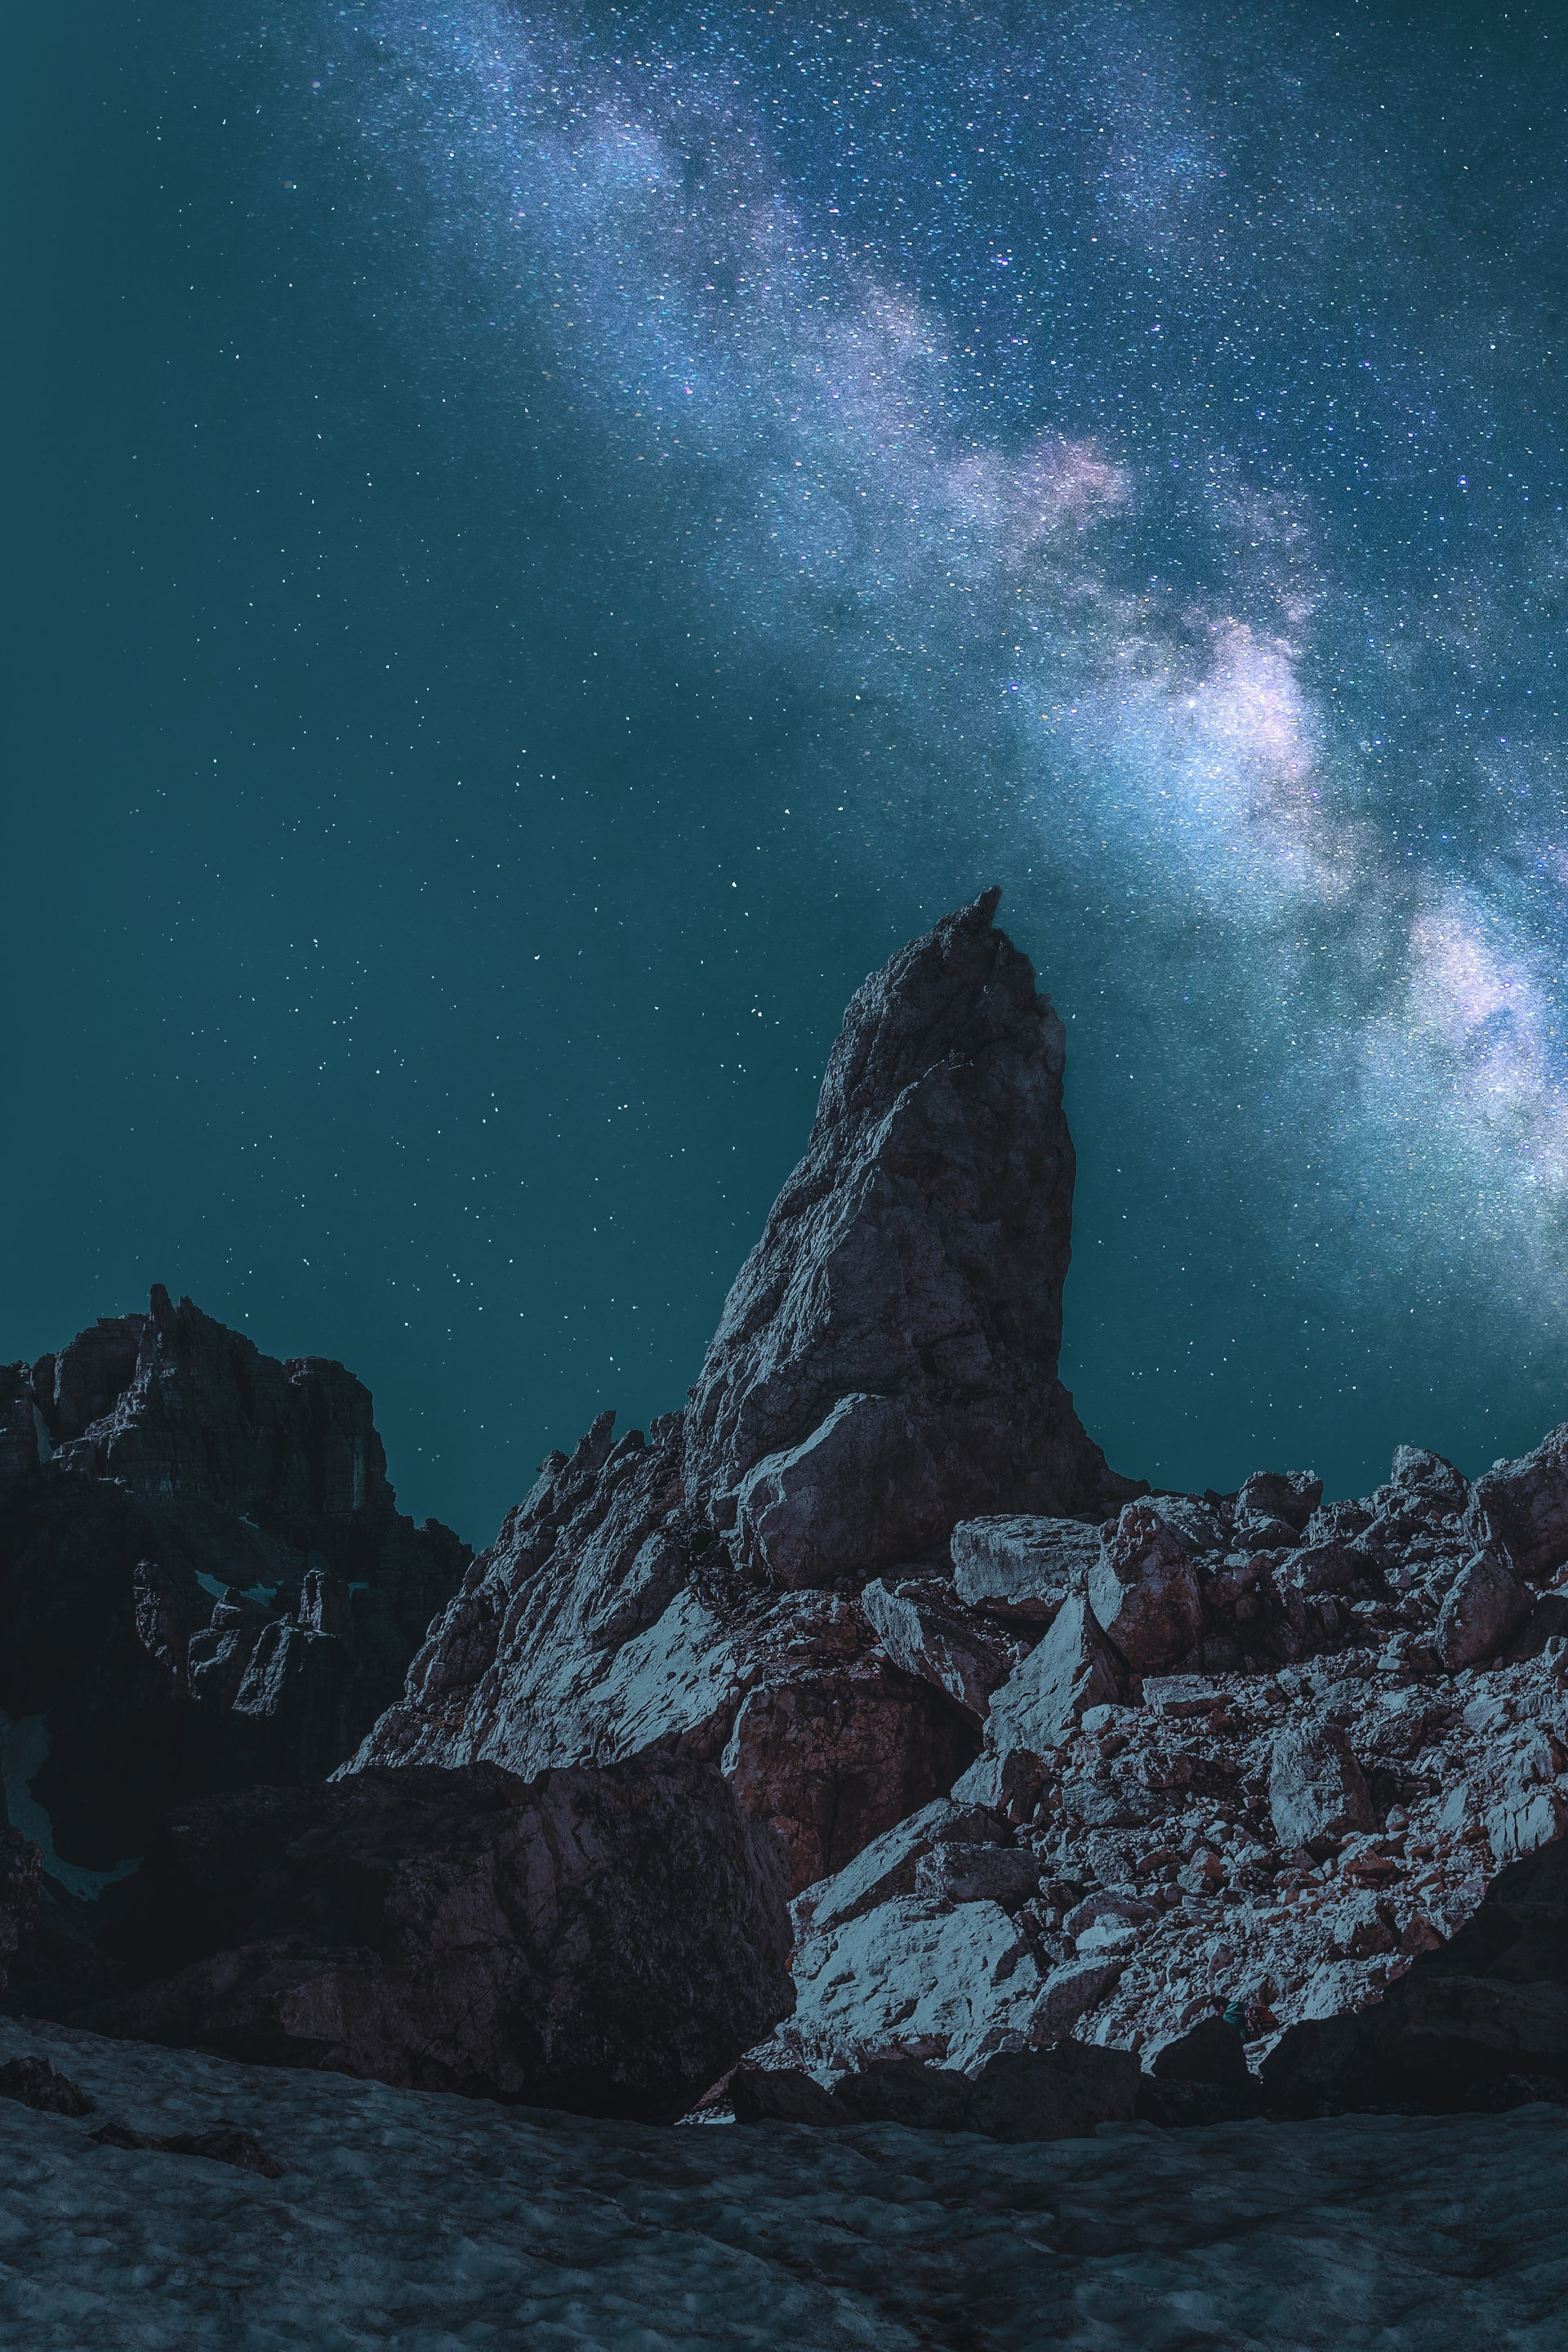 Iphone Xr Night Mountain Download Mobile Phone Full Hd Wallpaper